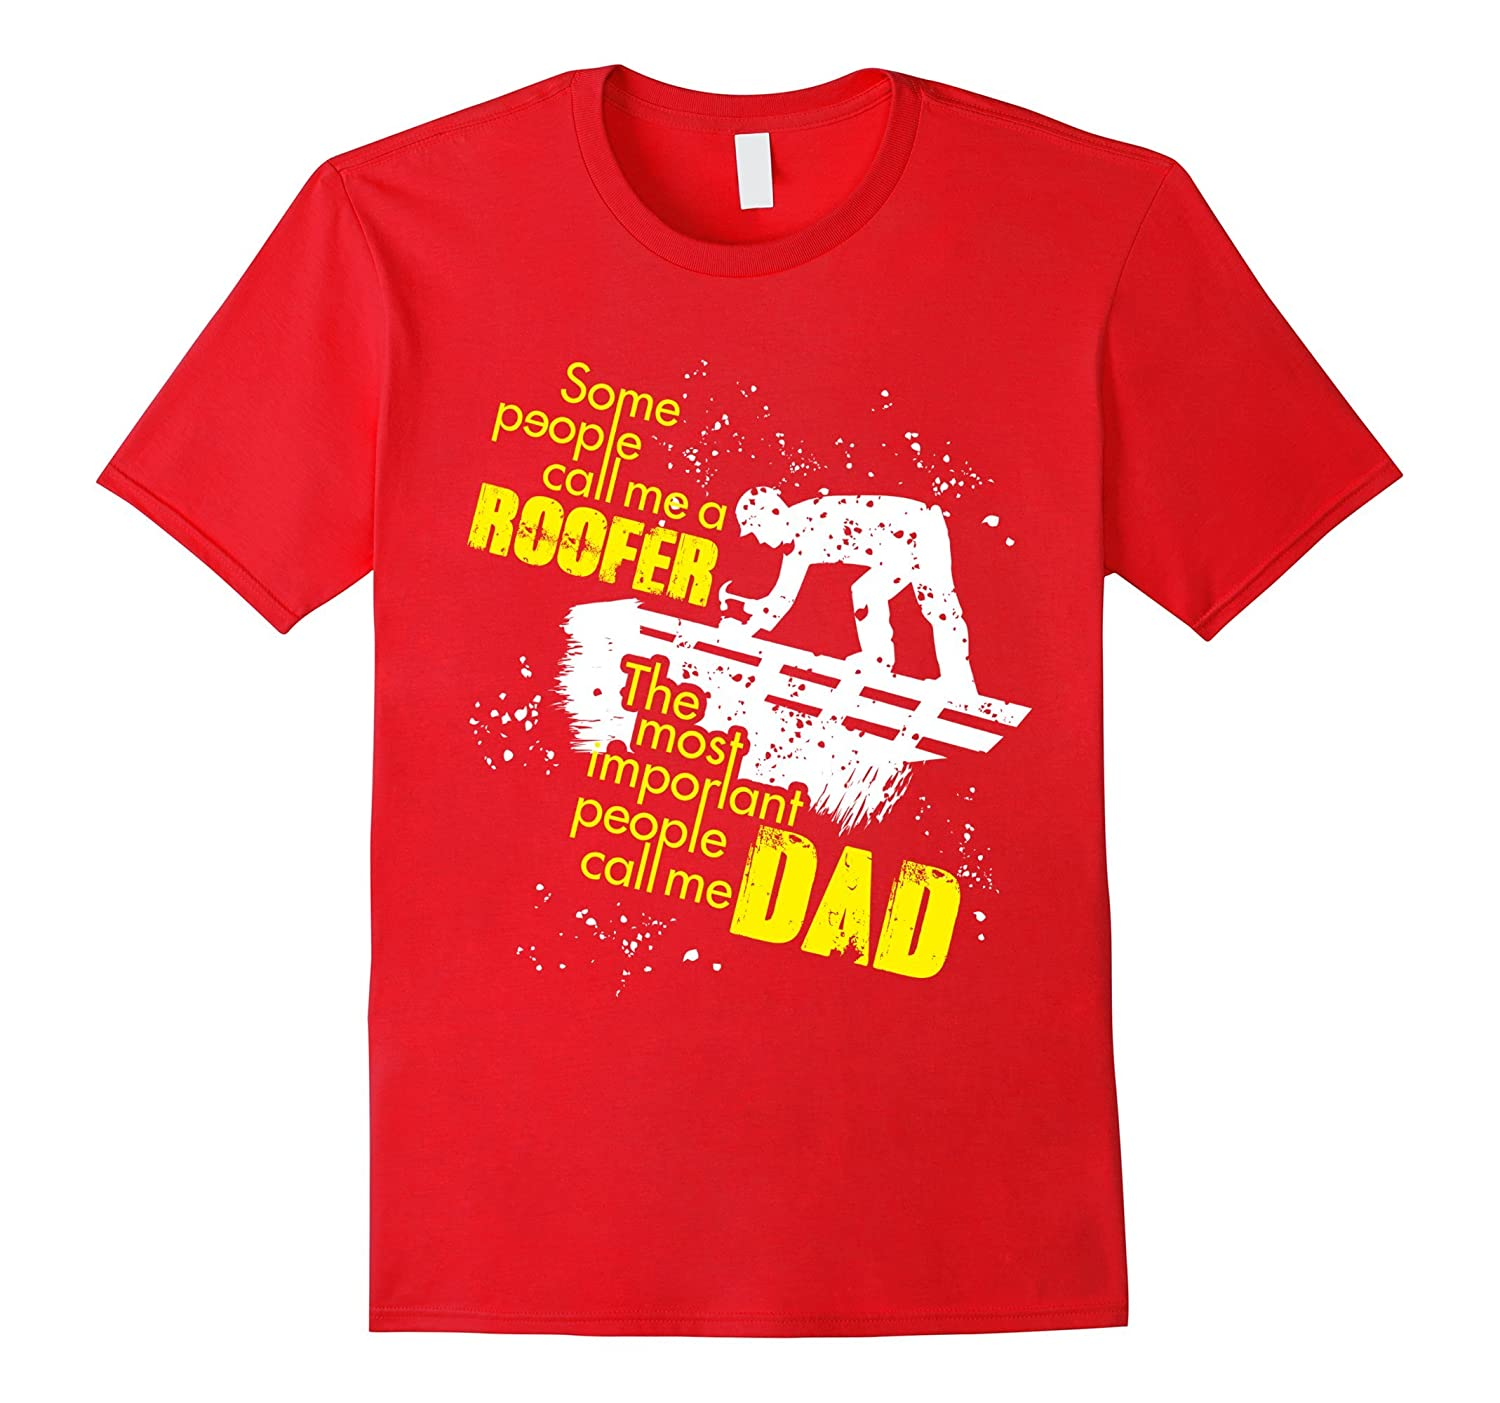 Mens The Most Important People Call Me Dad - Funny Roofer T Shirt-TH